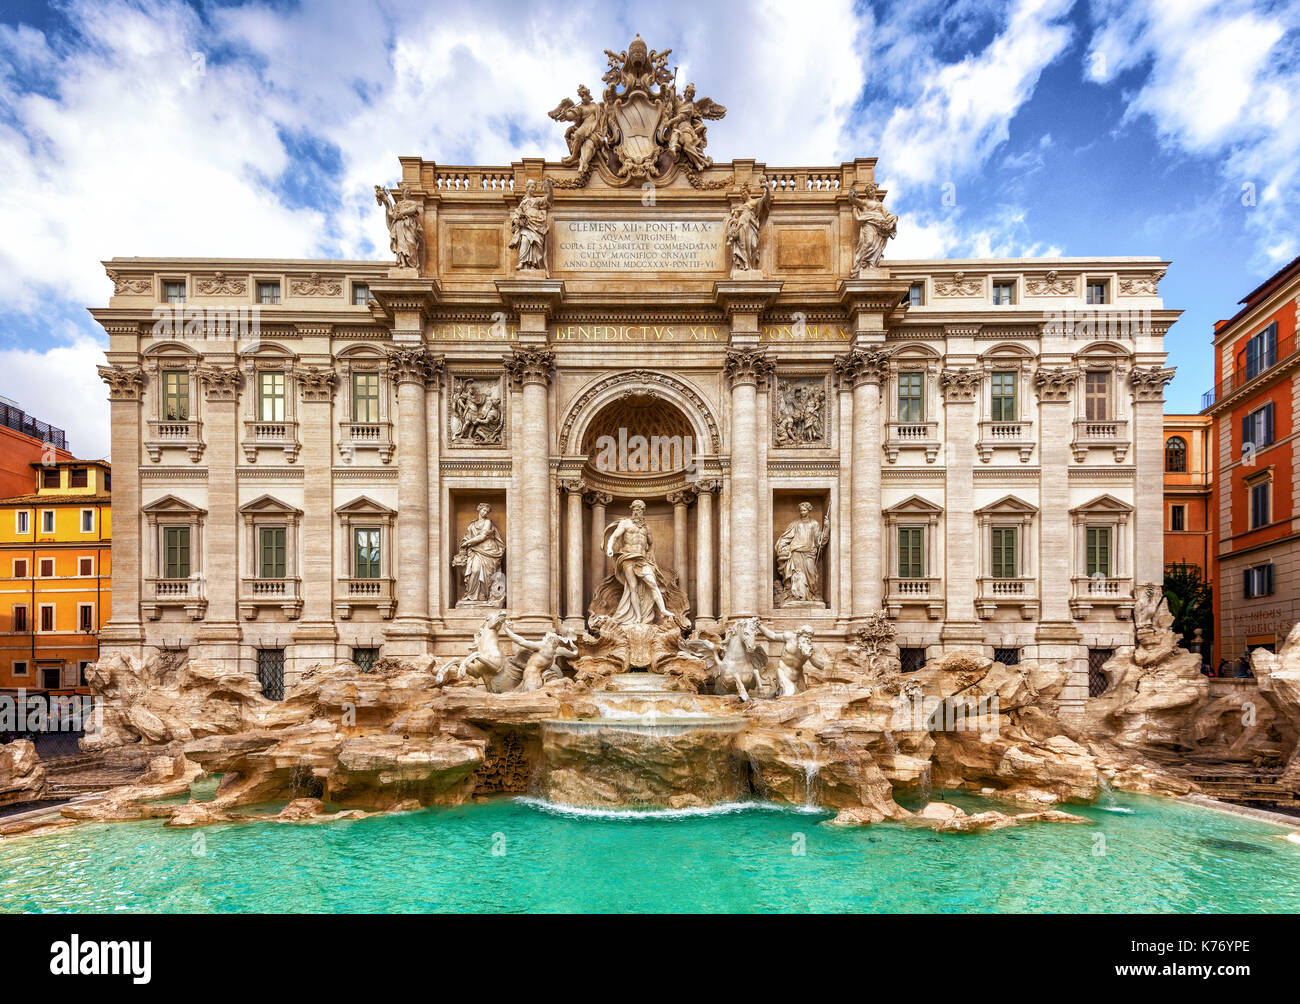 Fontana di Trevi. Big scene with all of the building is in frame. - Stock Image